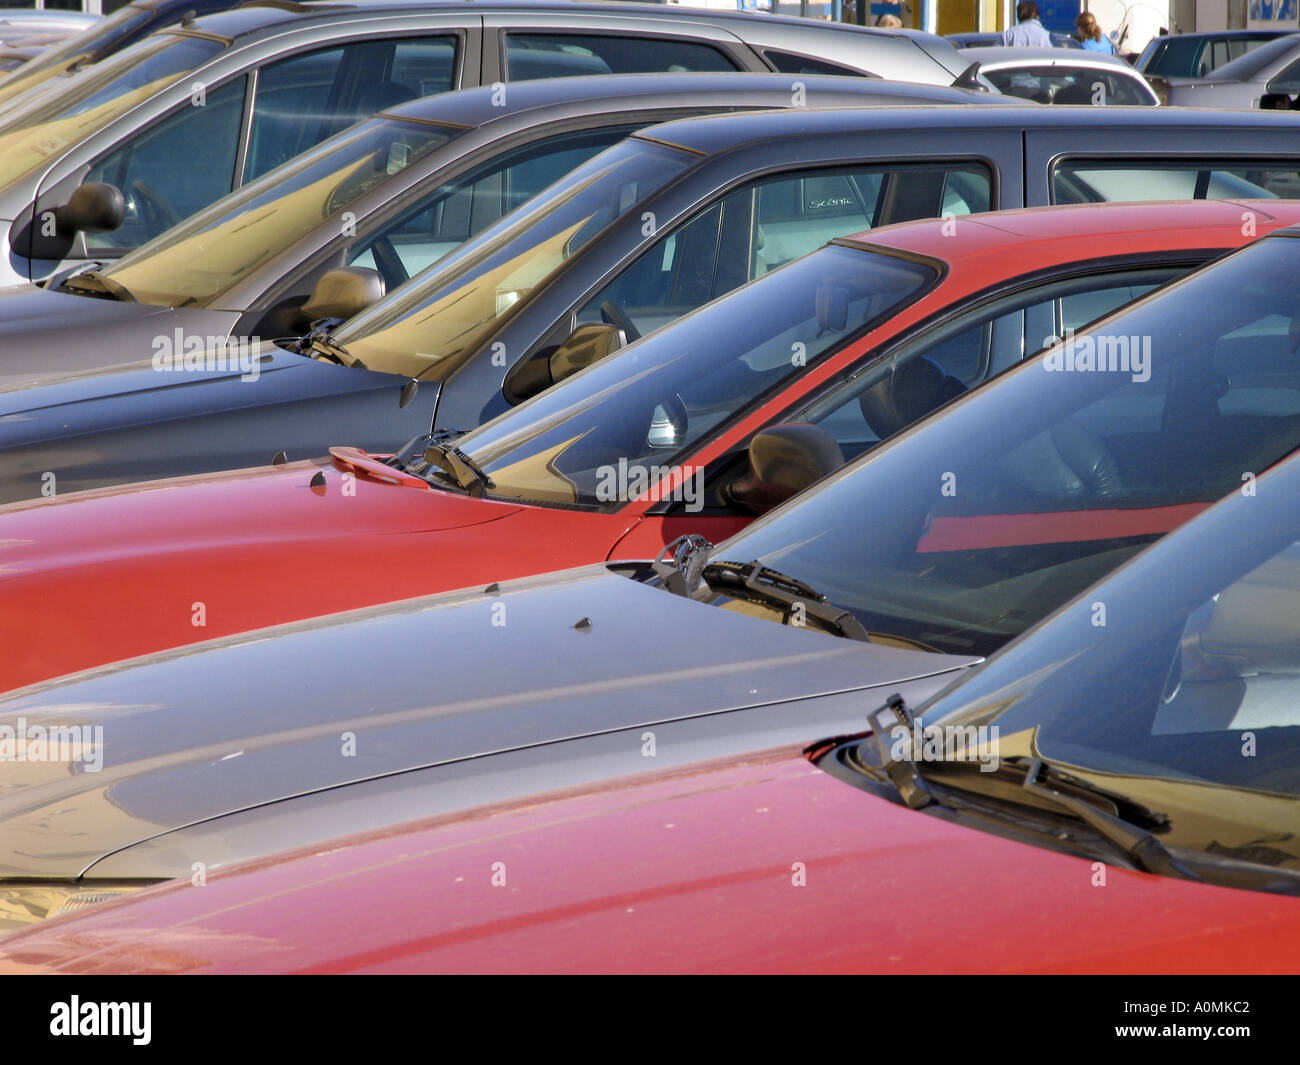 Parked cars - Stock Image